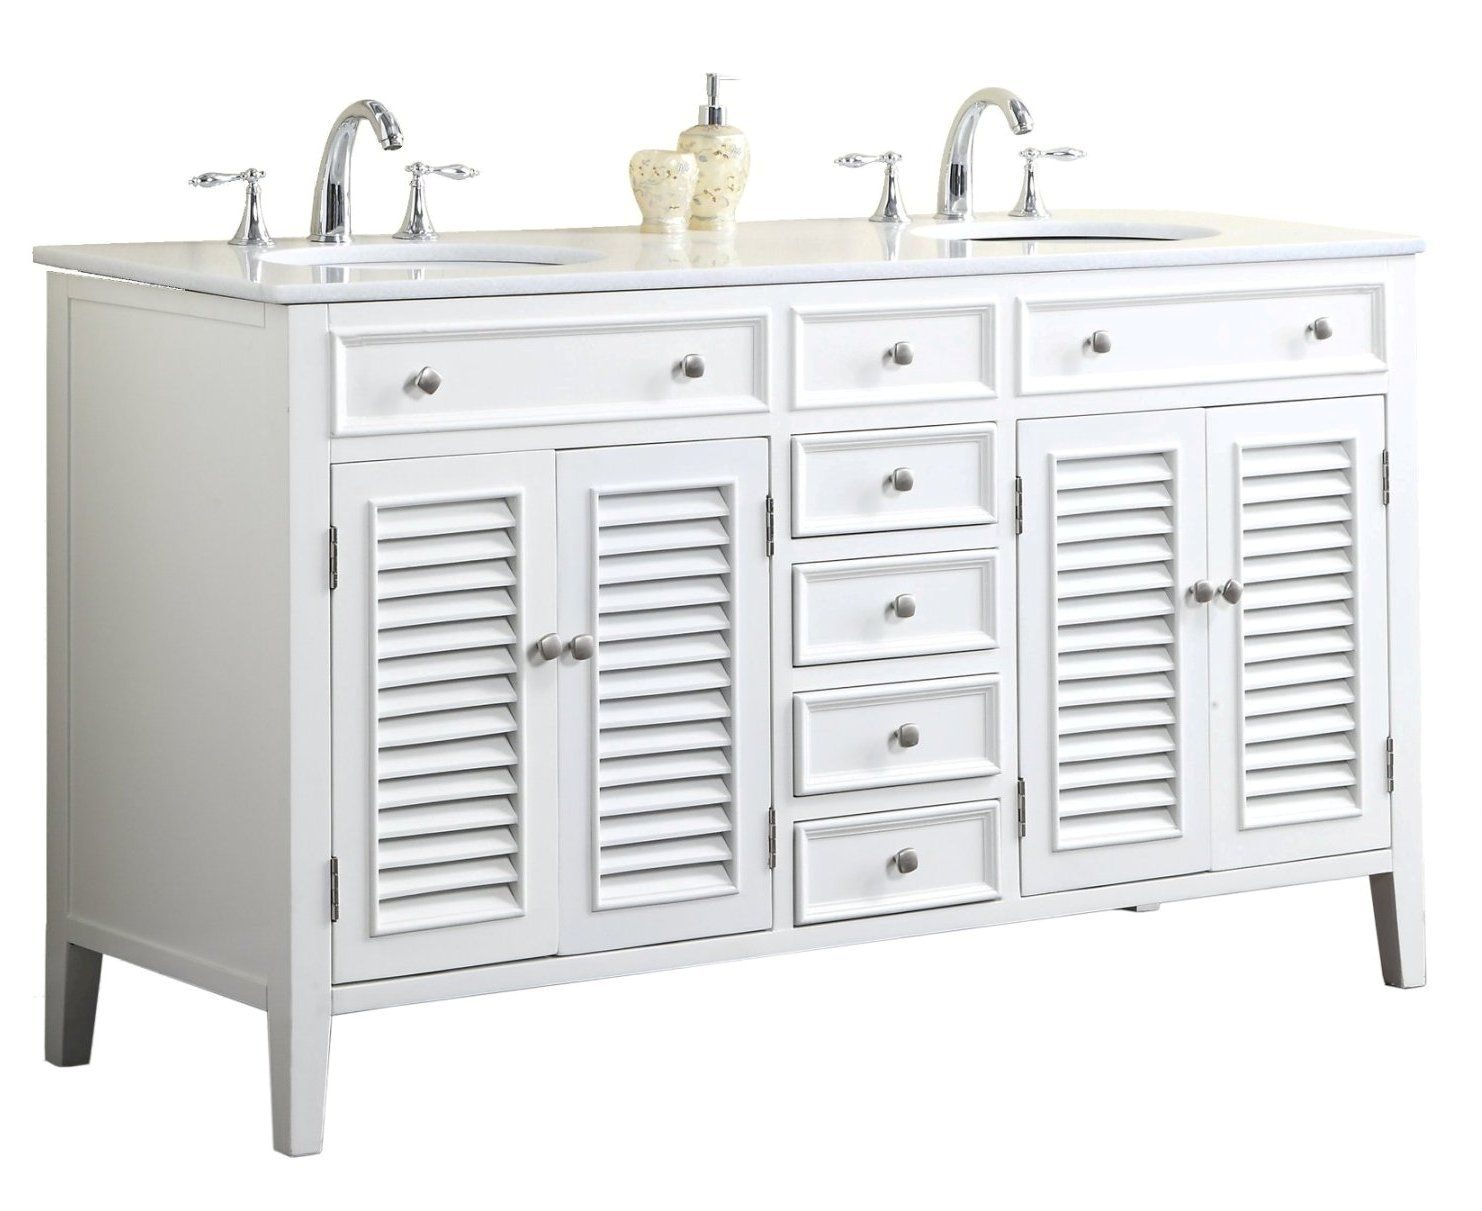 Shutter Blinds Double Sink Keri Bathroom Vanity With Crytsal White Marble  Top   U2014 Dimensions: 60 X 21 X Functional And Stylish, The Cottage Style  Keri Sink ...